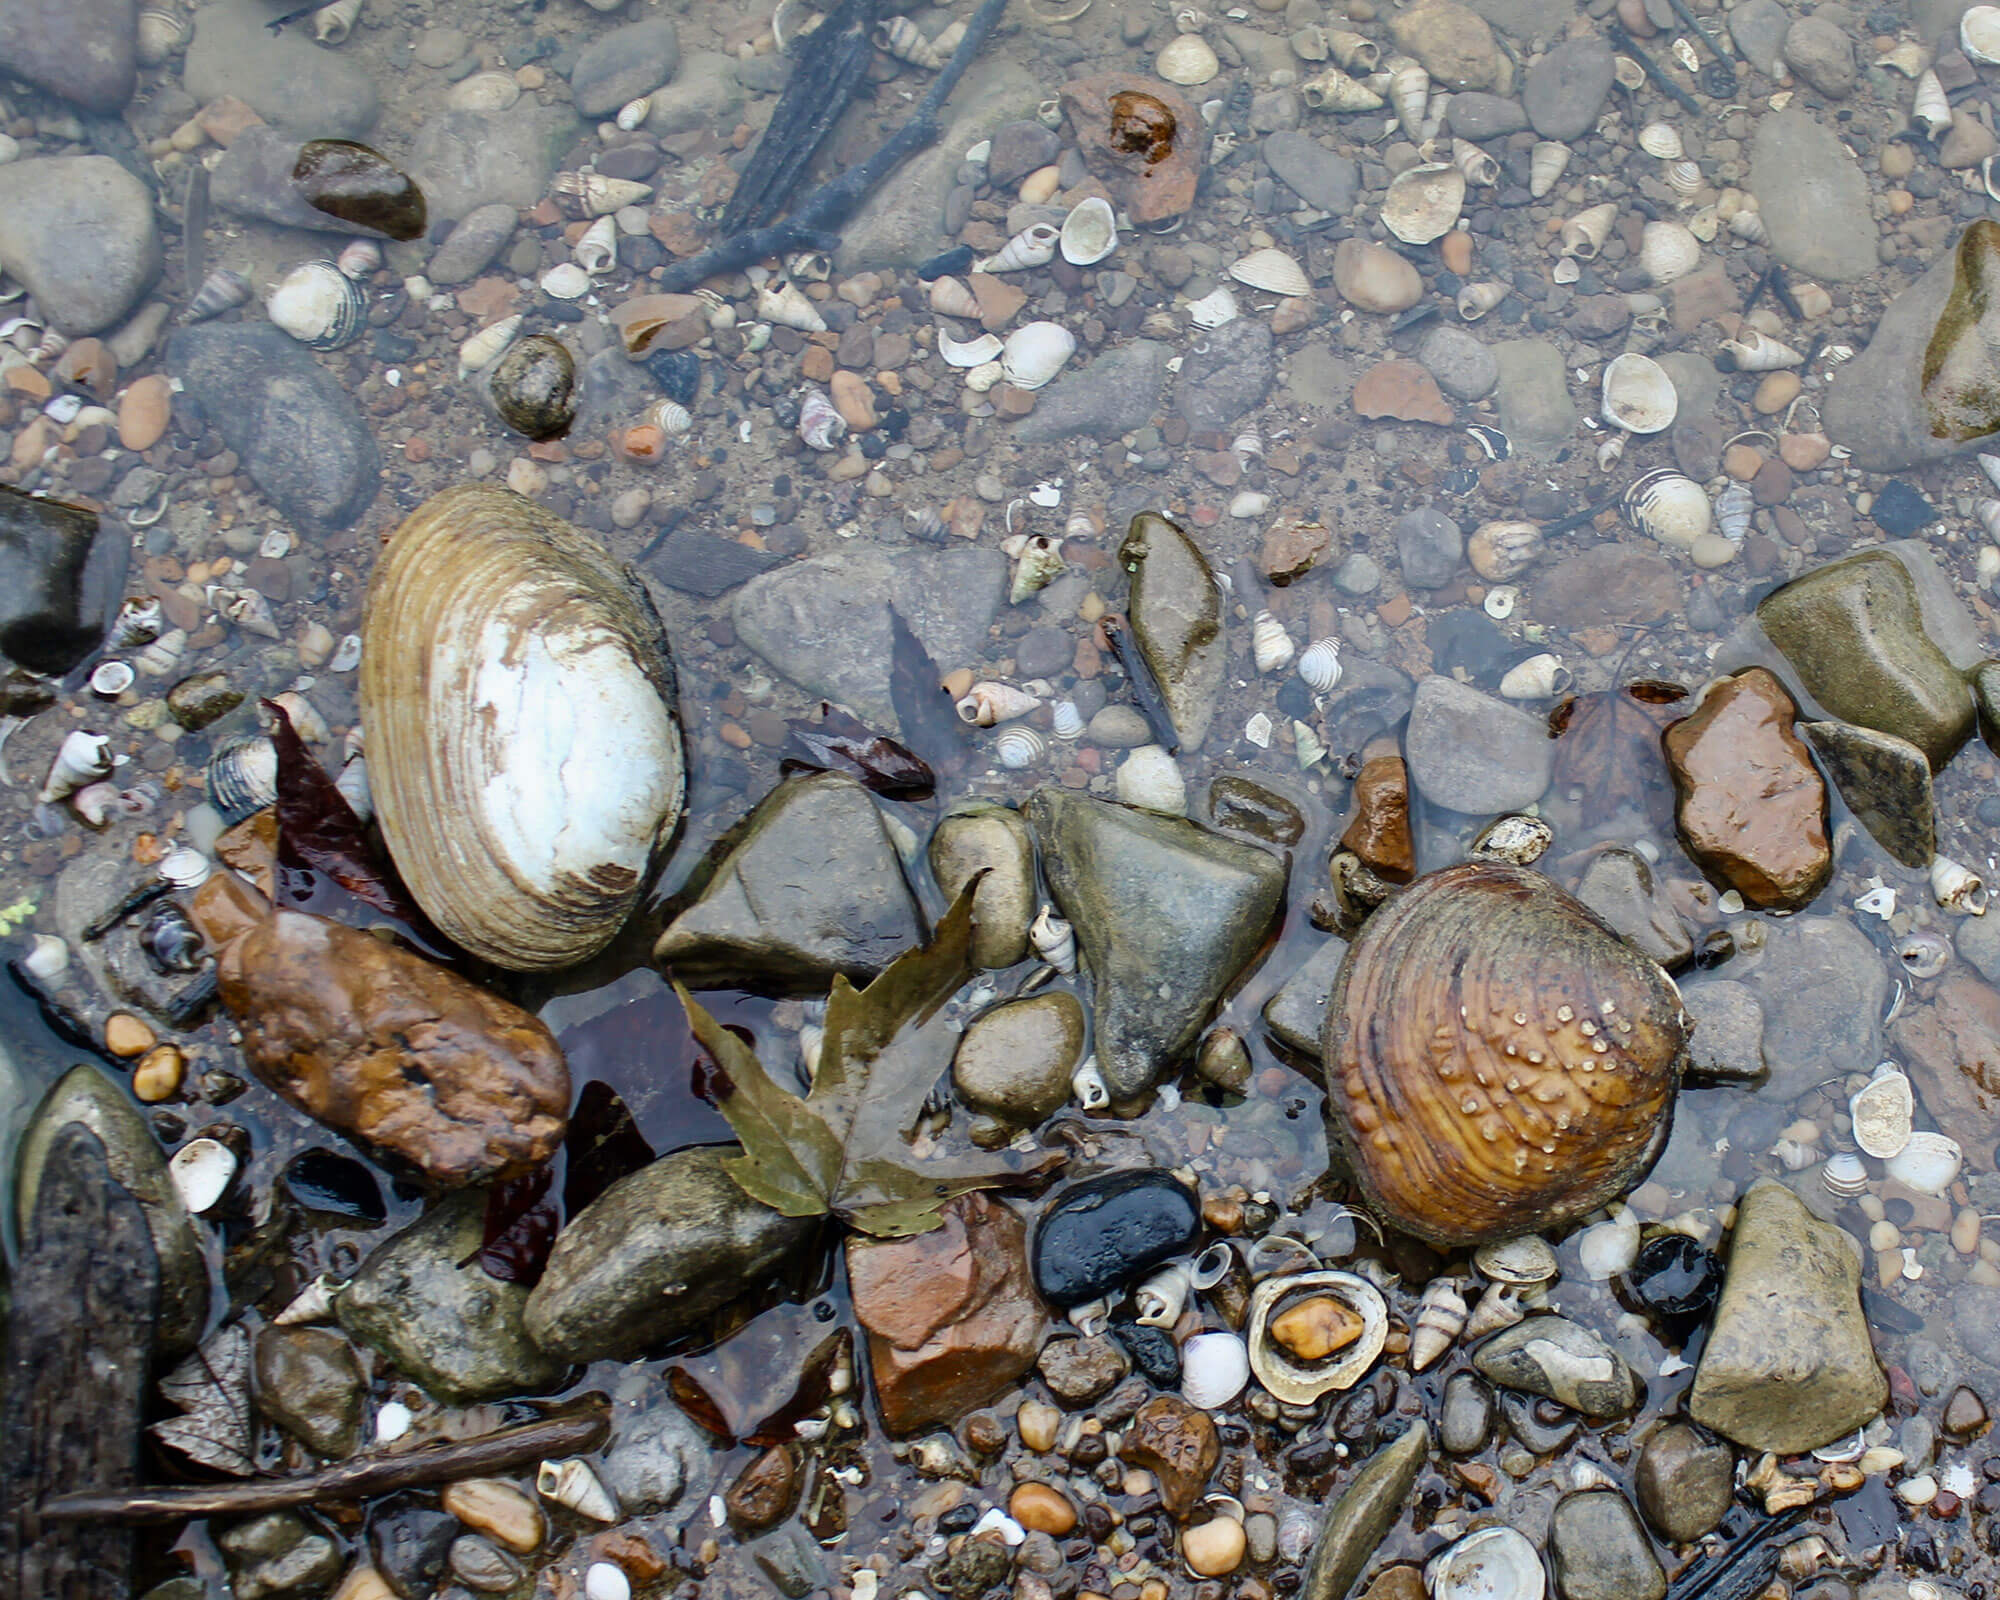 The riverbank is covered in shells on this stretch of the Licking River near Butler, Kentucky. (Photo by Carrie Blackmore Smith/PublicSource)